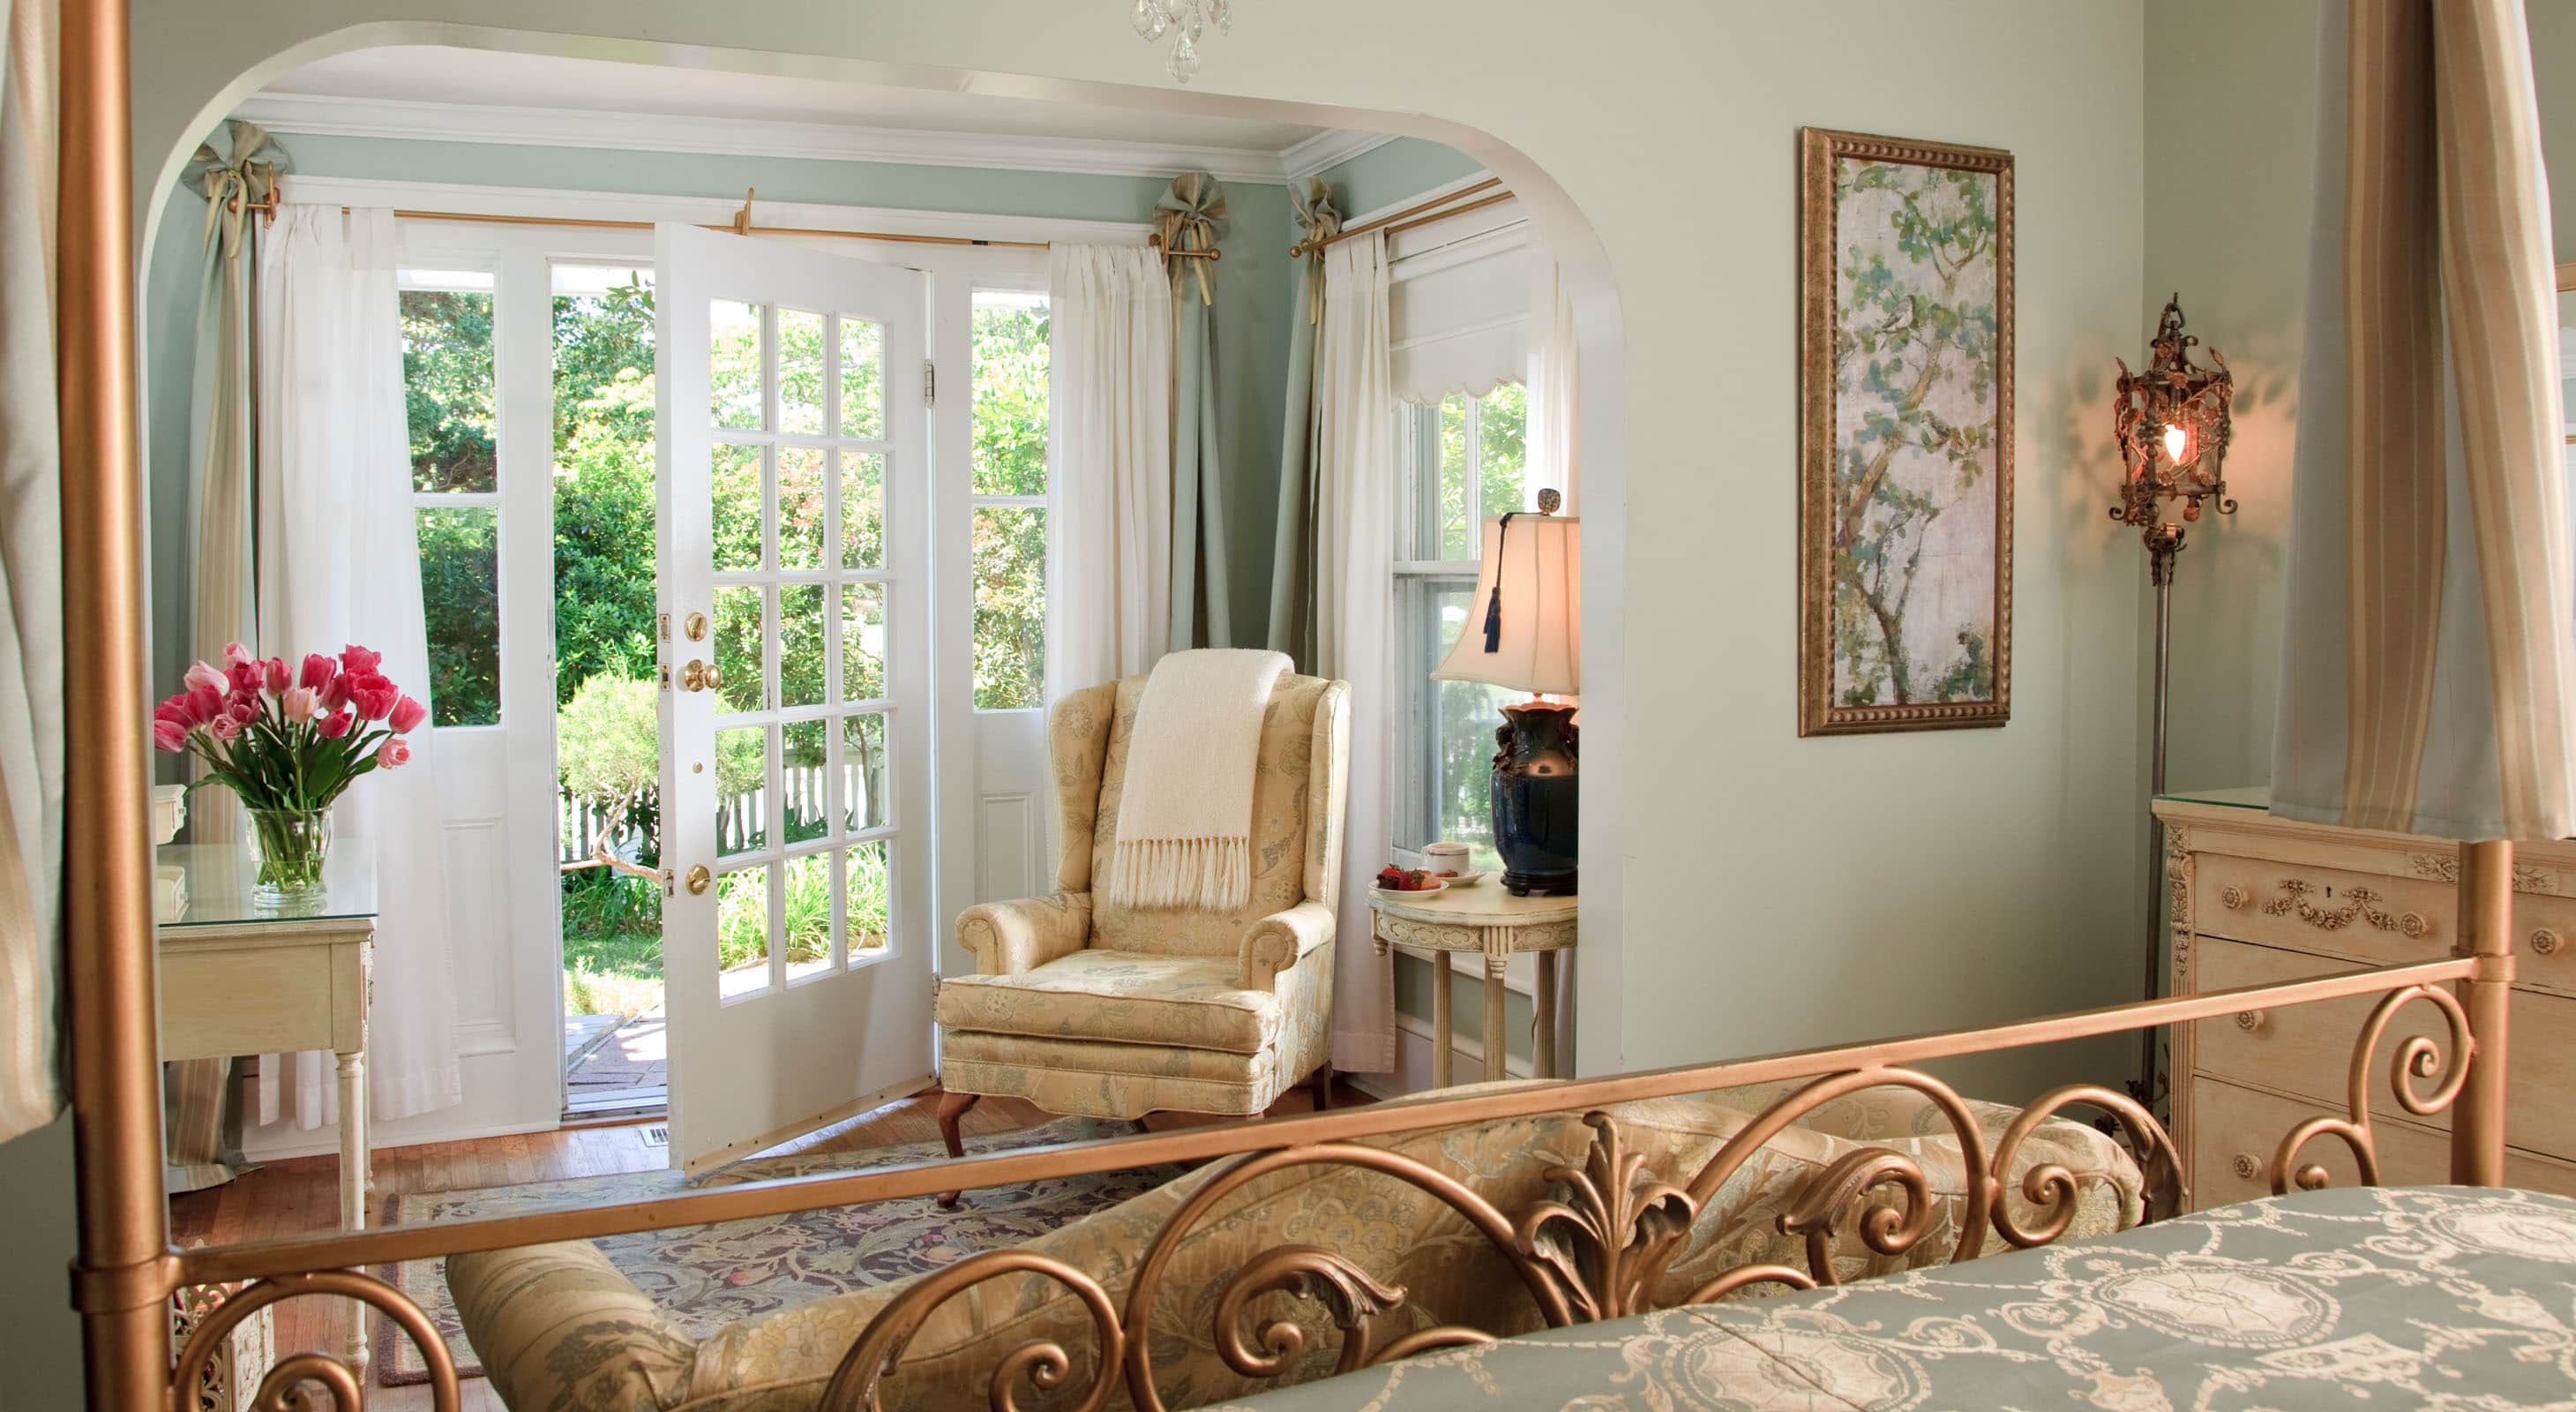 Golden King Bedroom with Private Garden Door at Our B&B on the Outer Banks